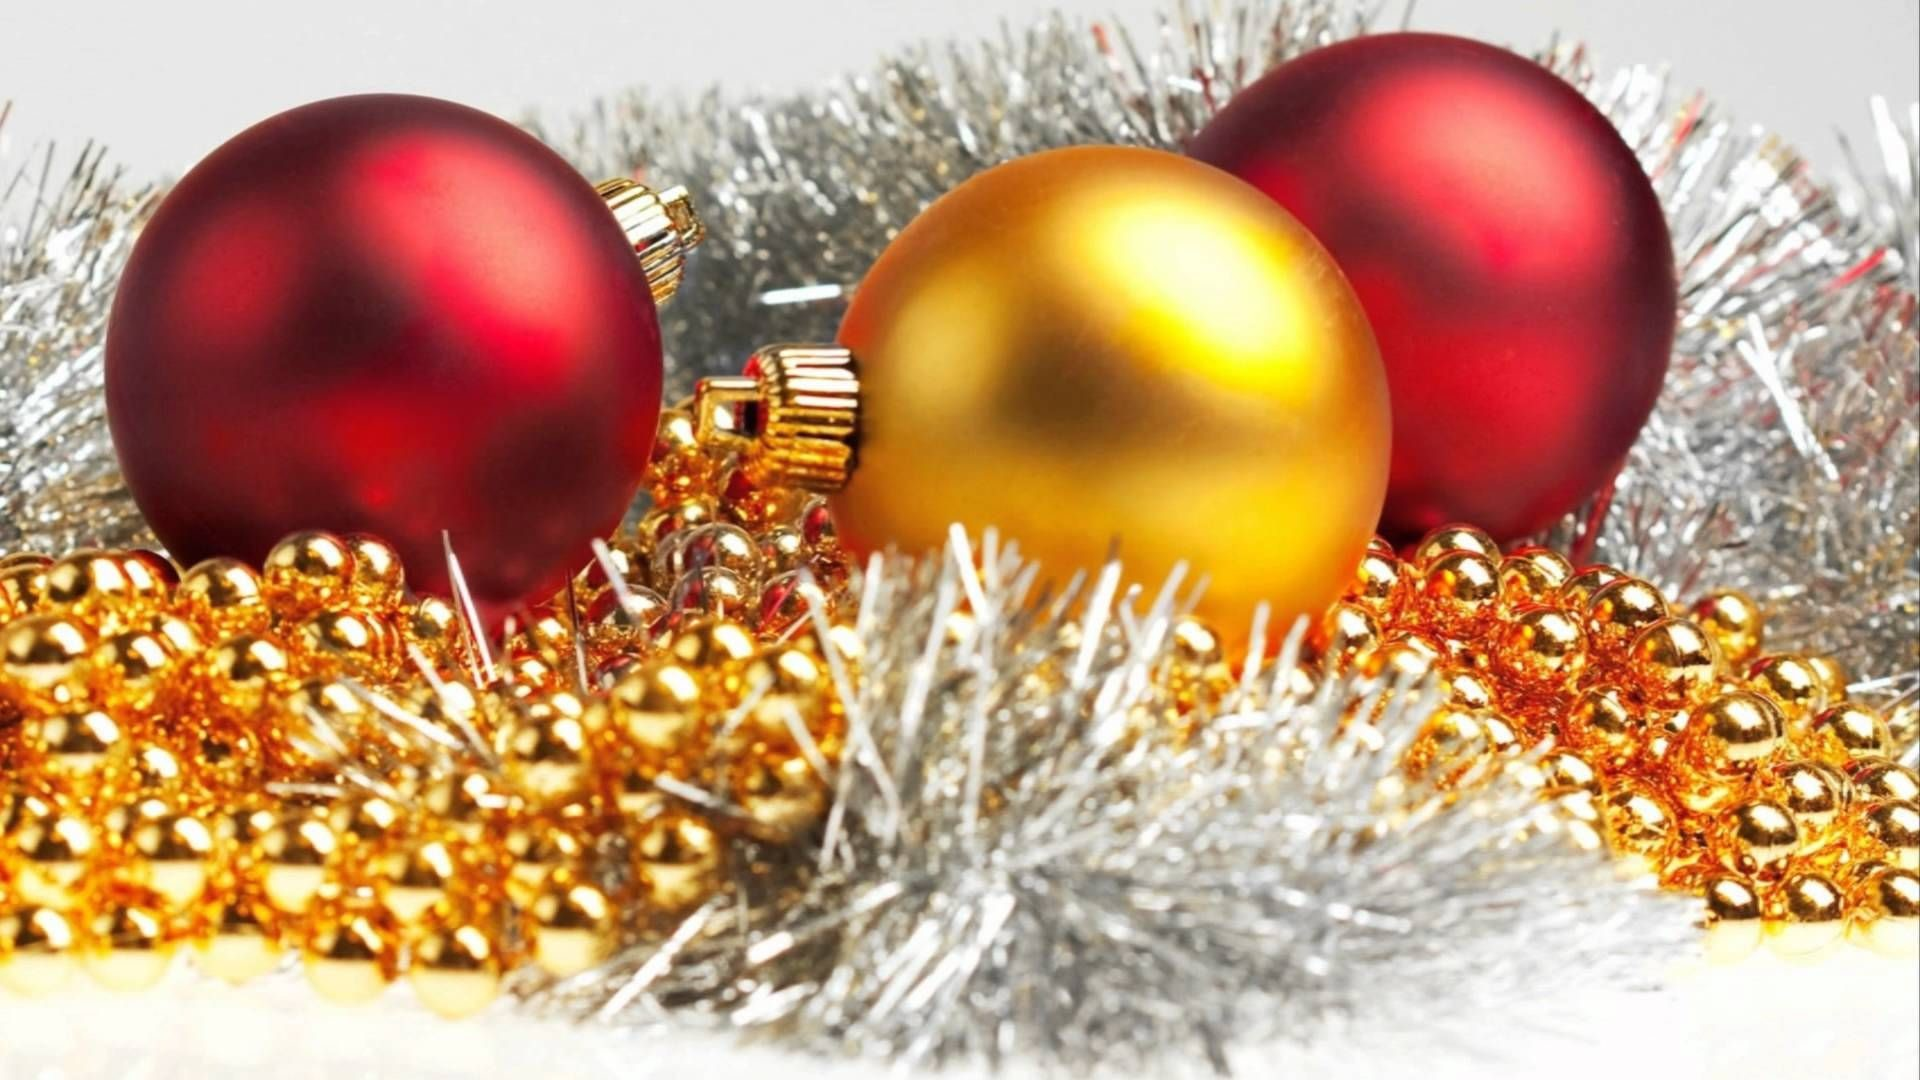 Res: 1920x1080, 350 Beautiful Christmas HD Wallpapers 1080p Part 7 - YouTube